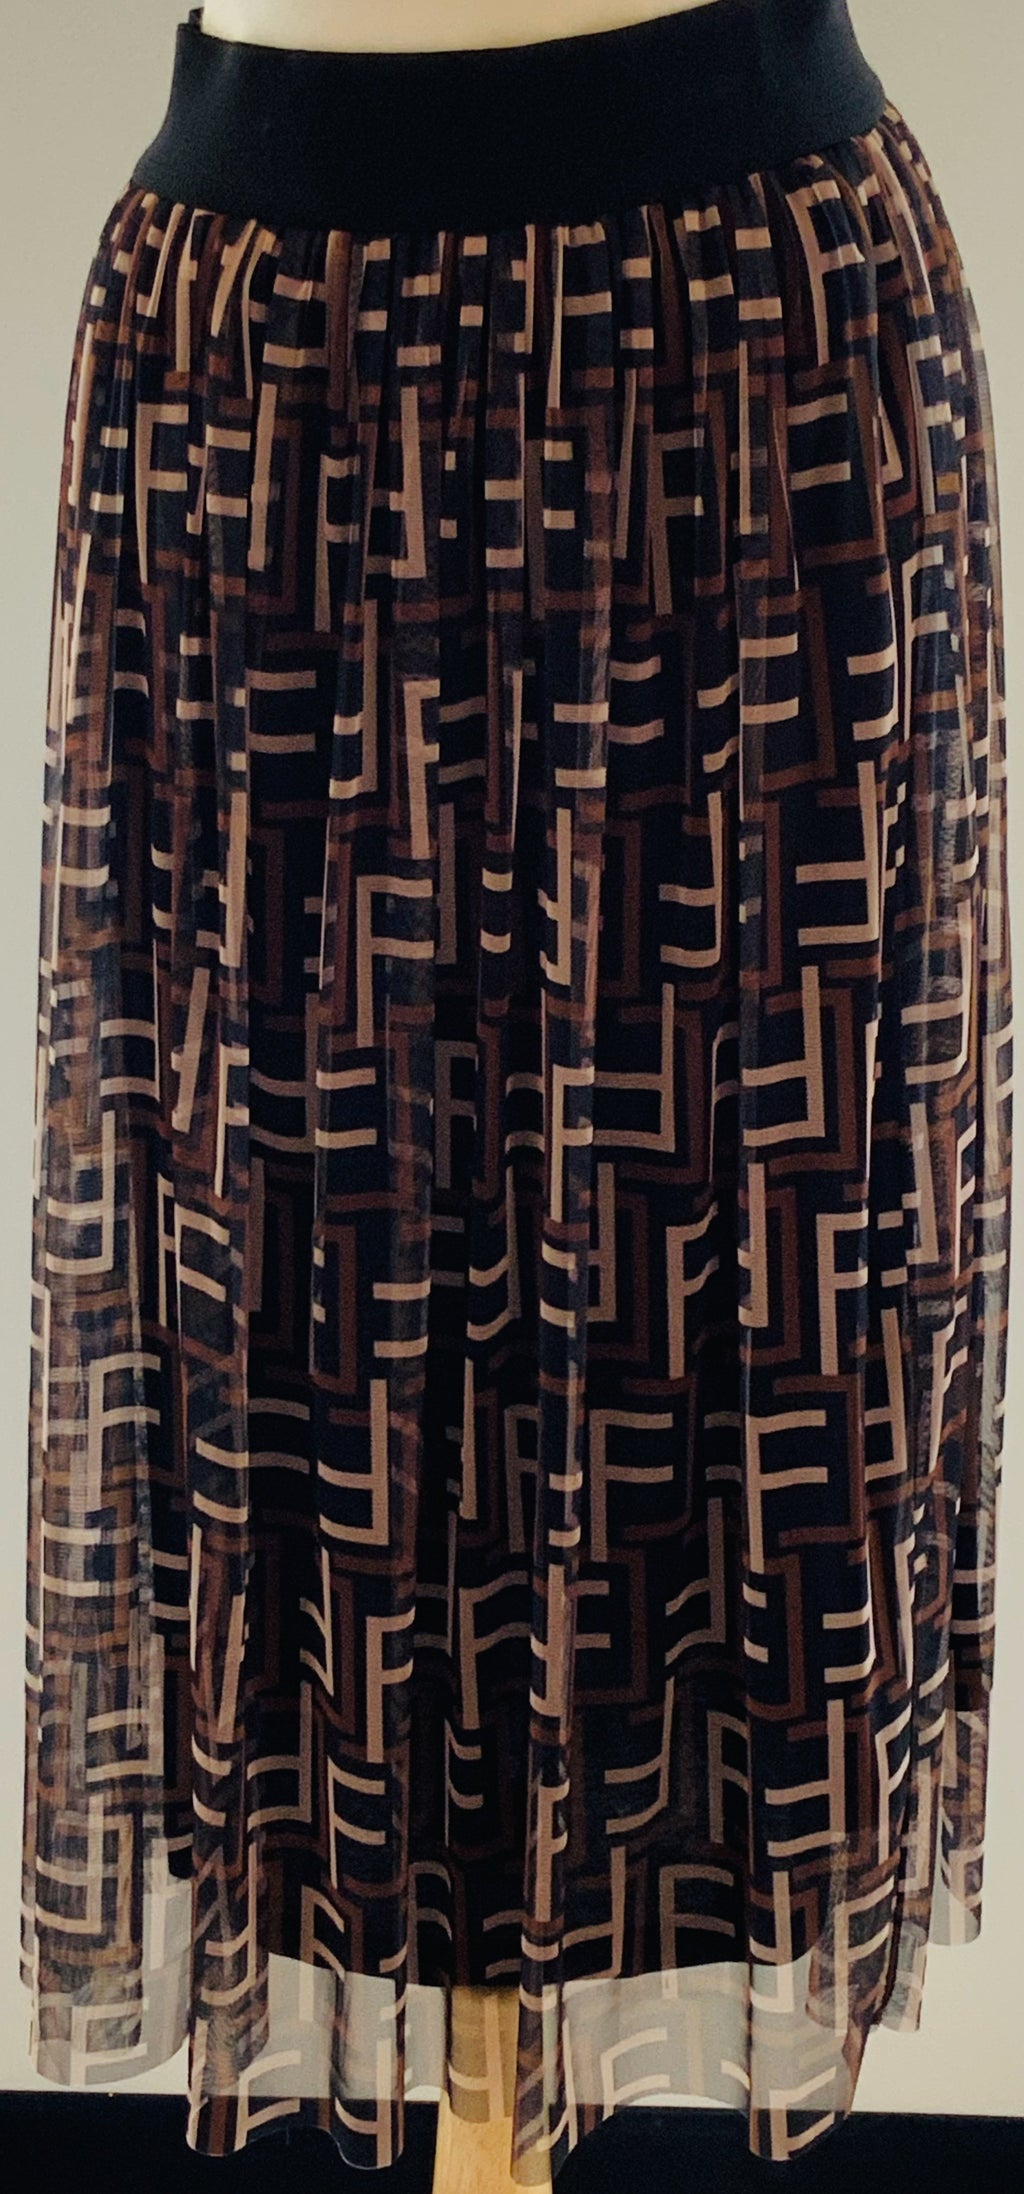 Fendi Inspired Skirt